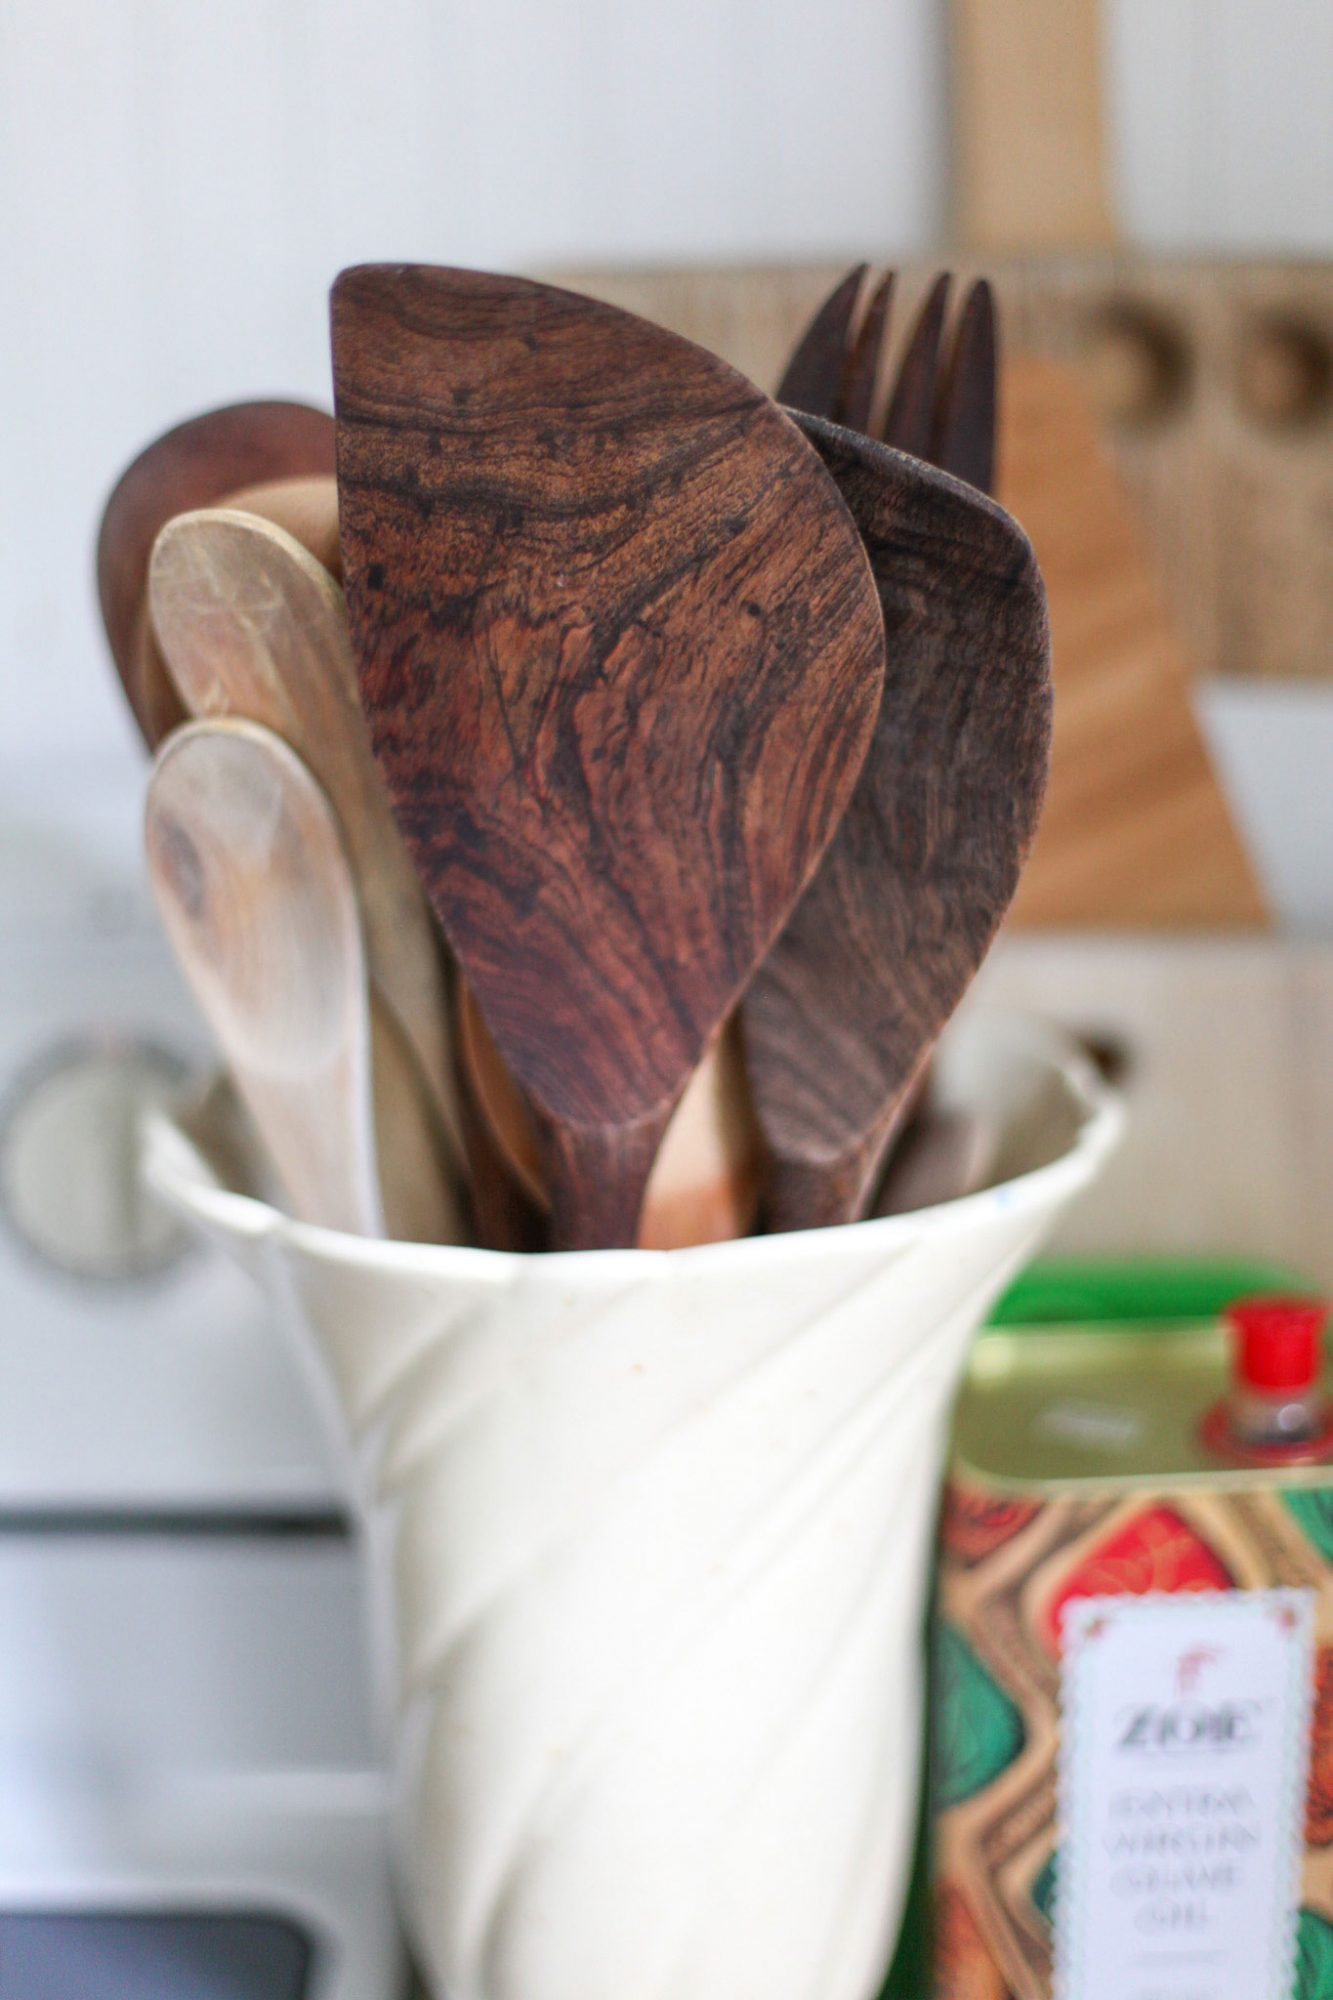 Wooden Spoon Collection in Cream Vase